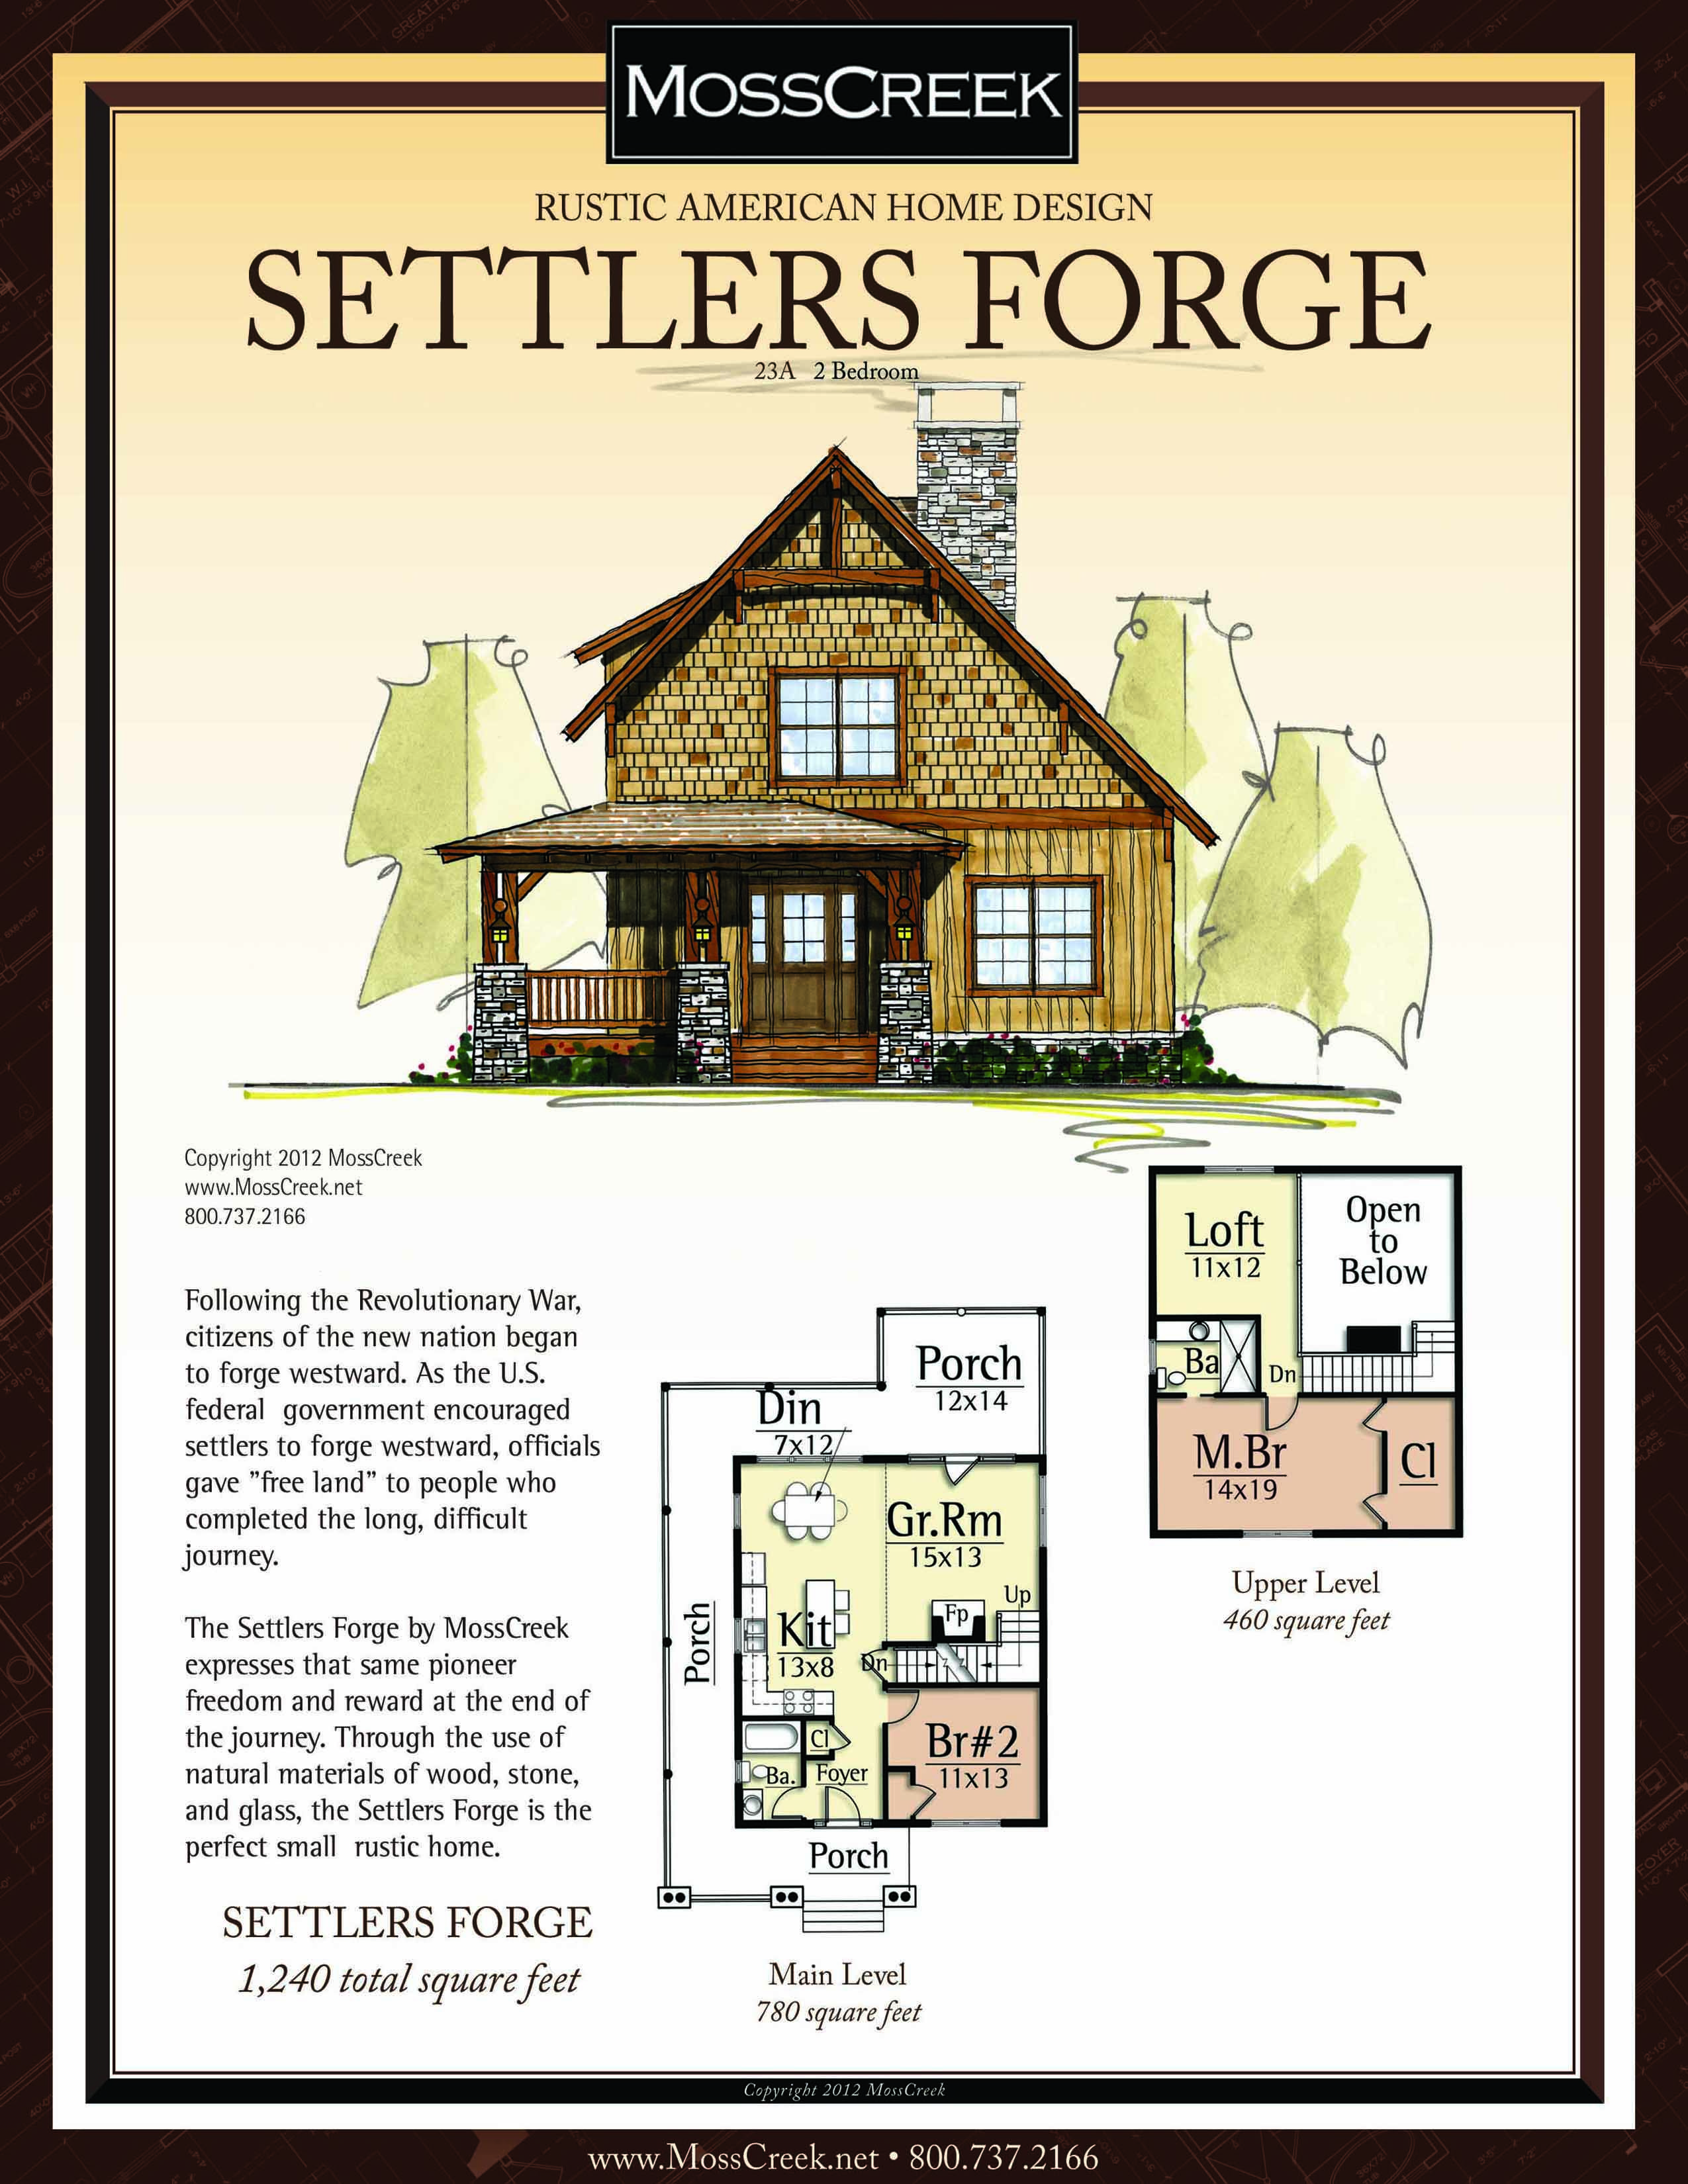 Luxury Log Homes Timber Frame Homes Timber Frame Home Plans Rustic House Plans Log Home Plans